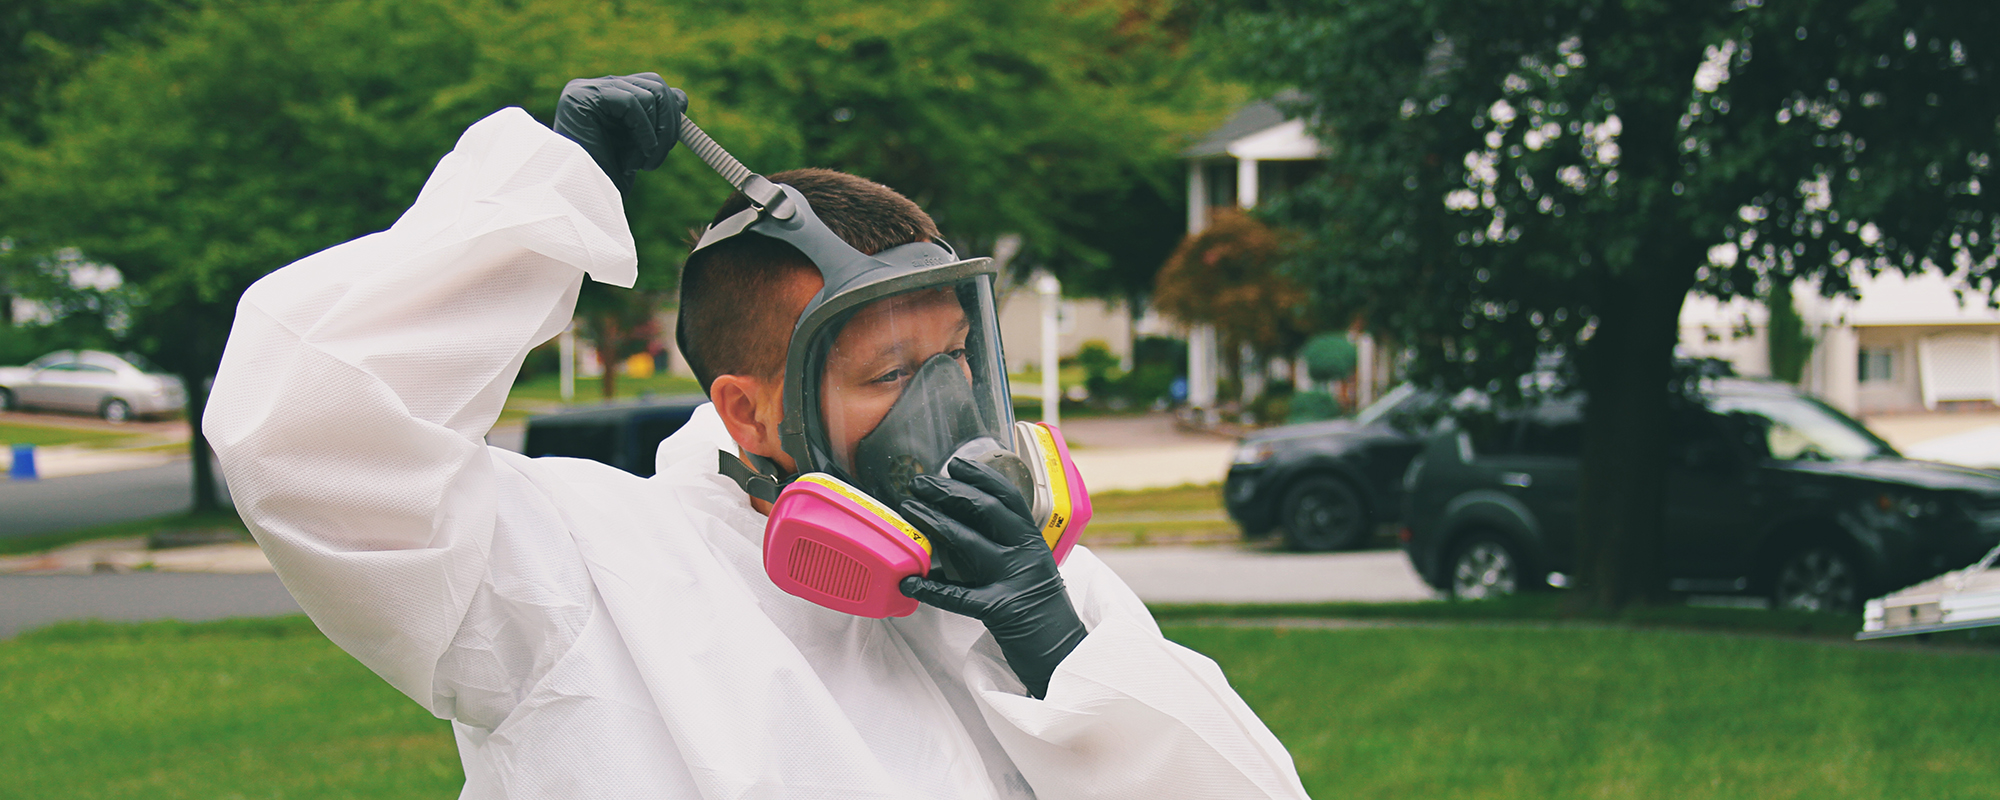 mold-removal-company-eastern-pa